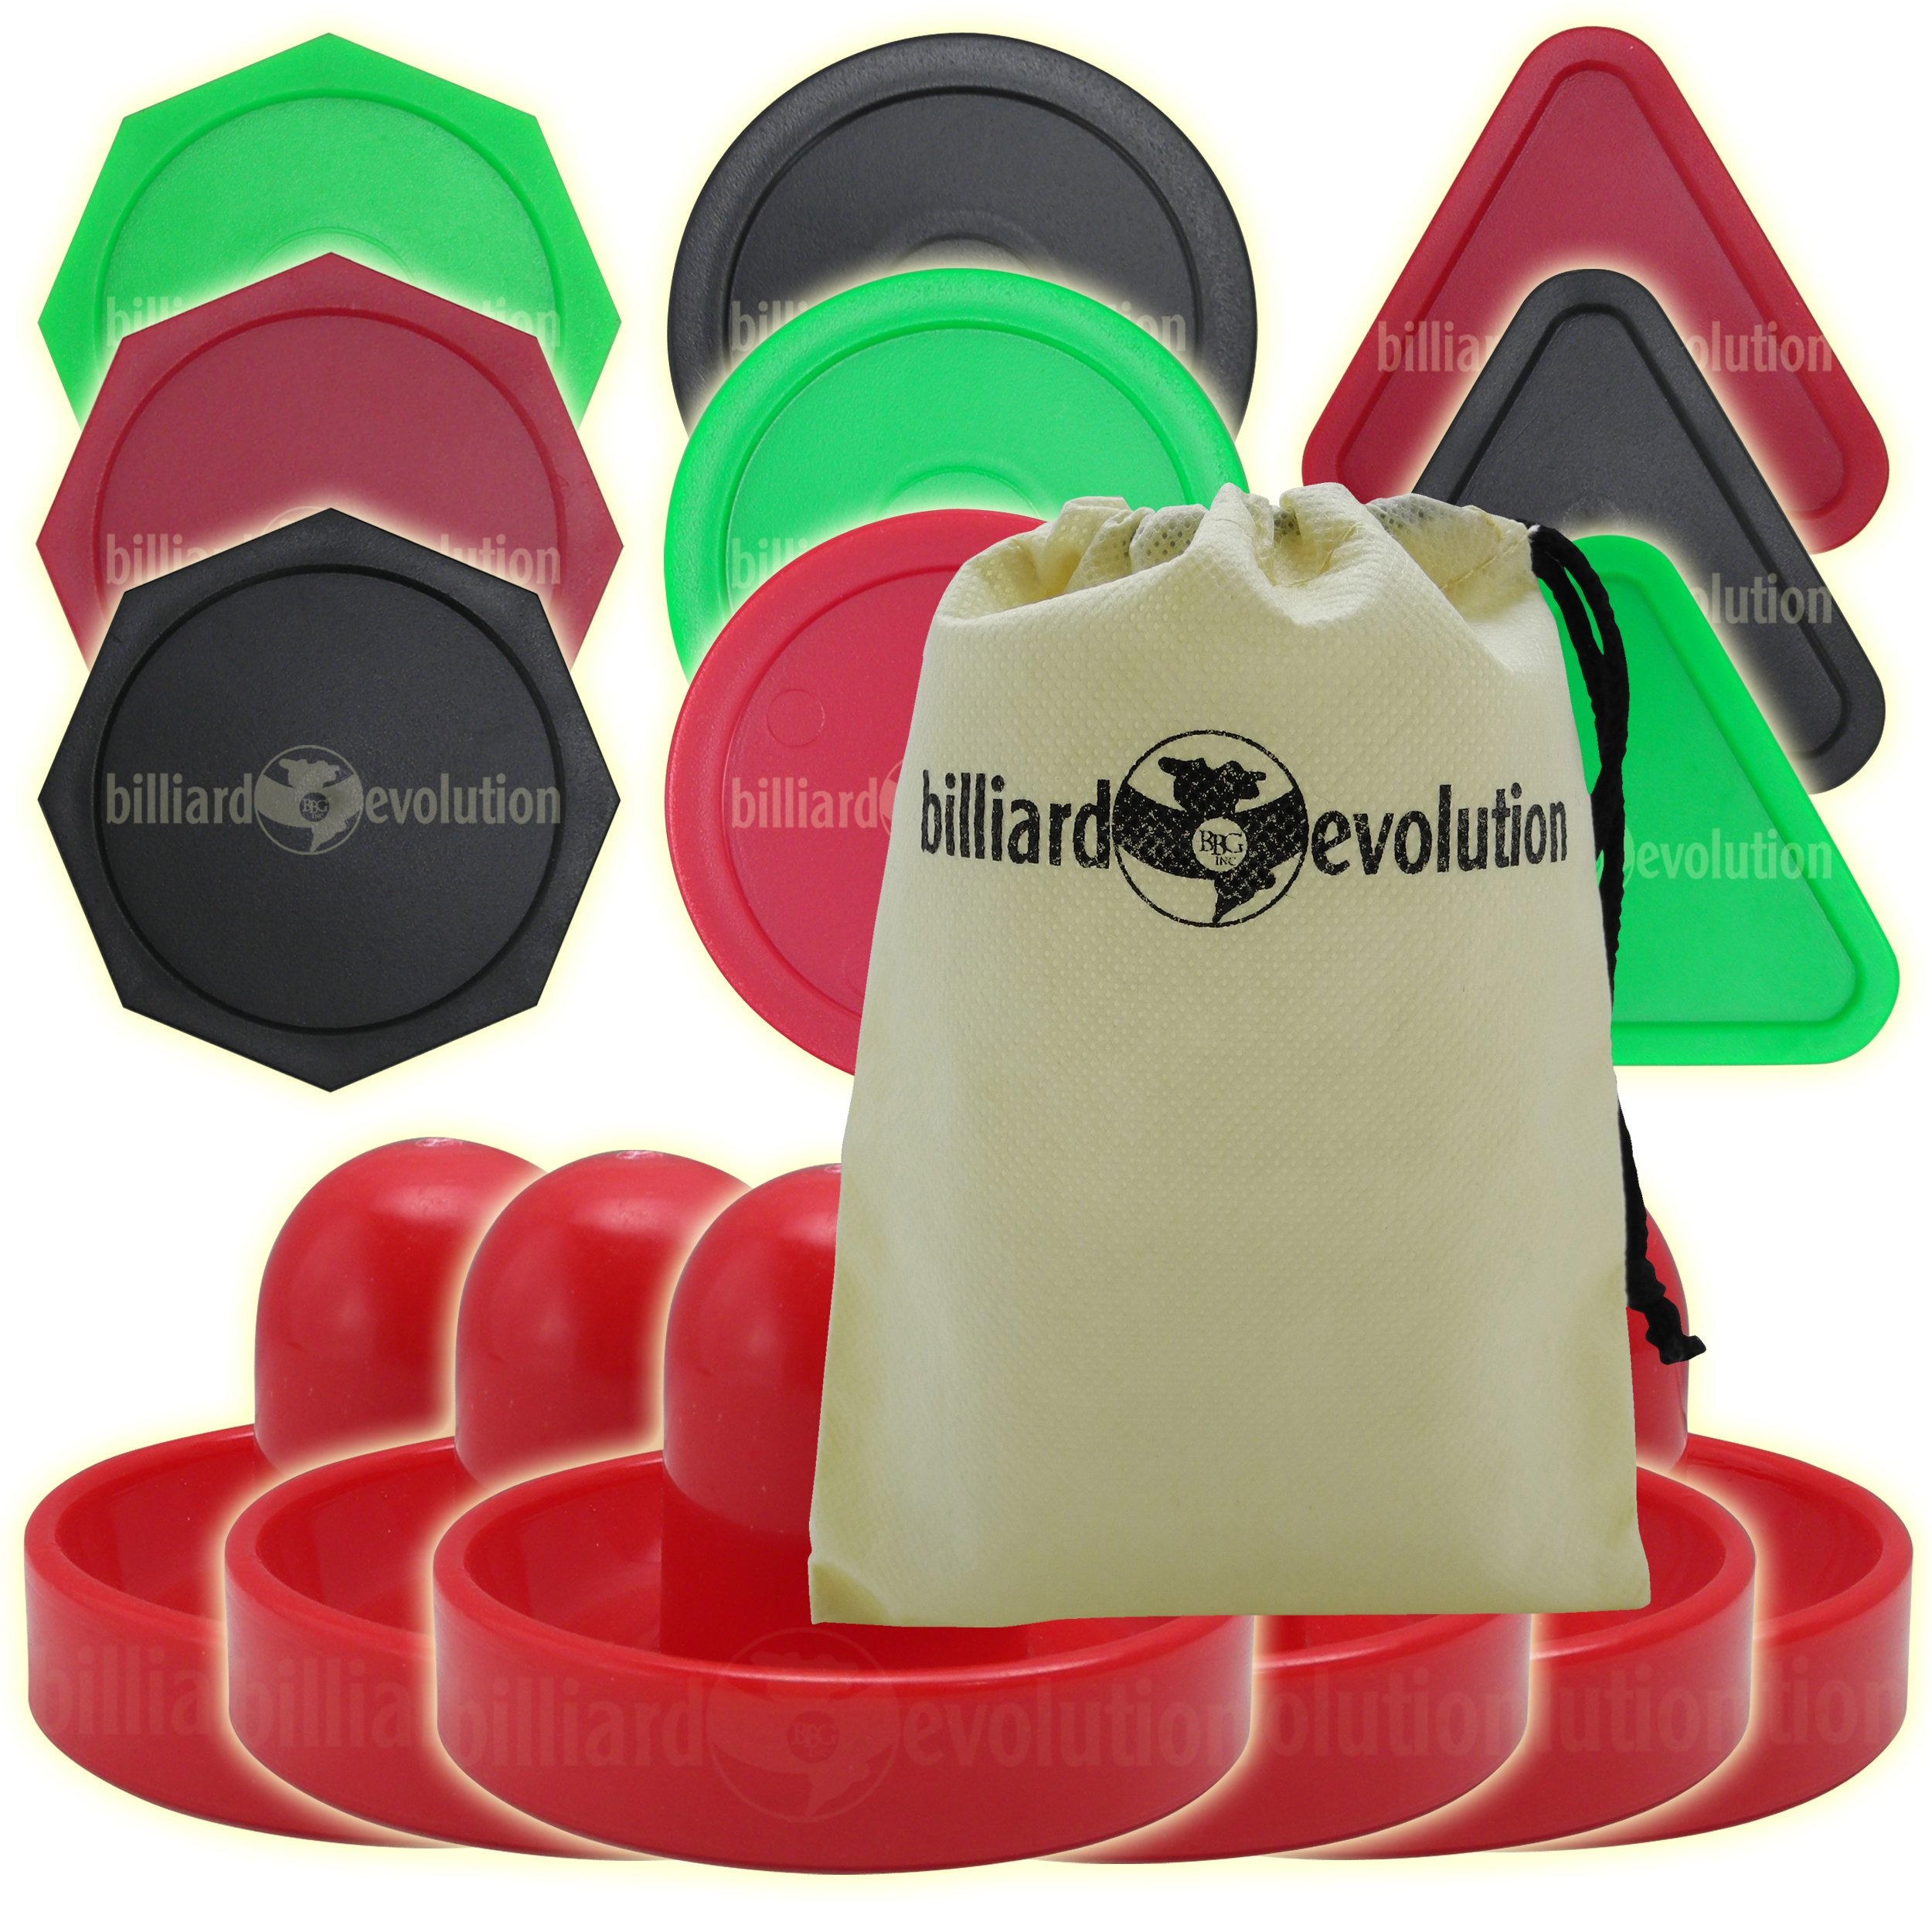 Billiard Evolution 6 Red Air Hockey Pushers and 9 Pucks-Round Triangle Octagon